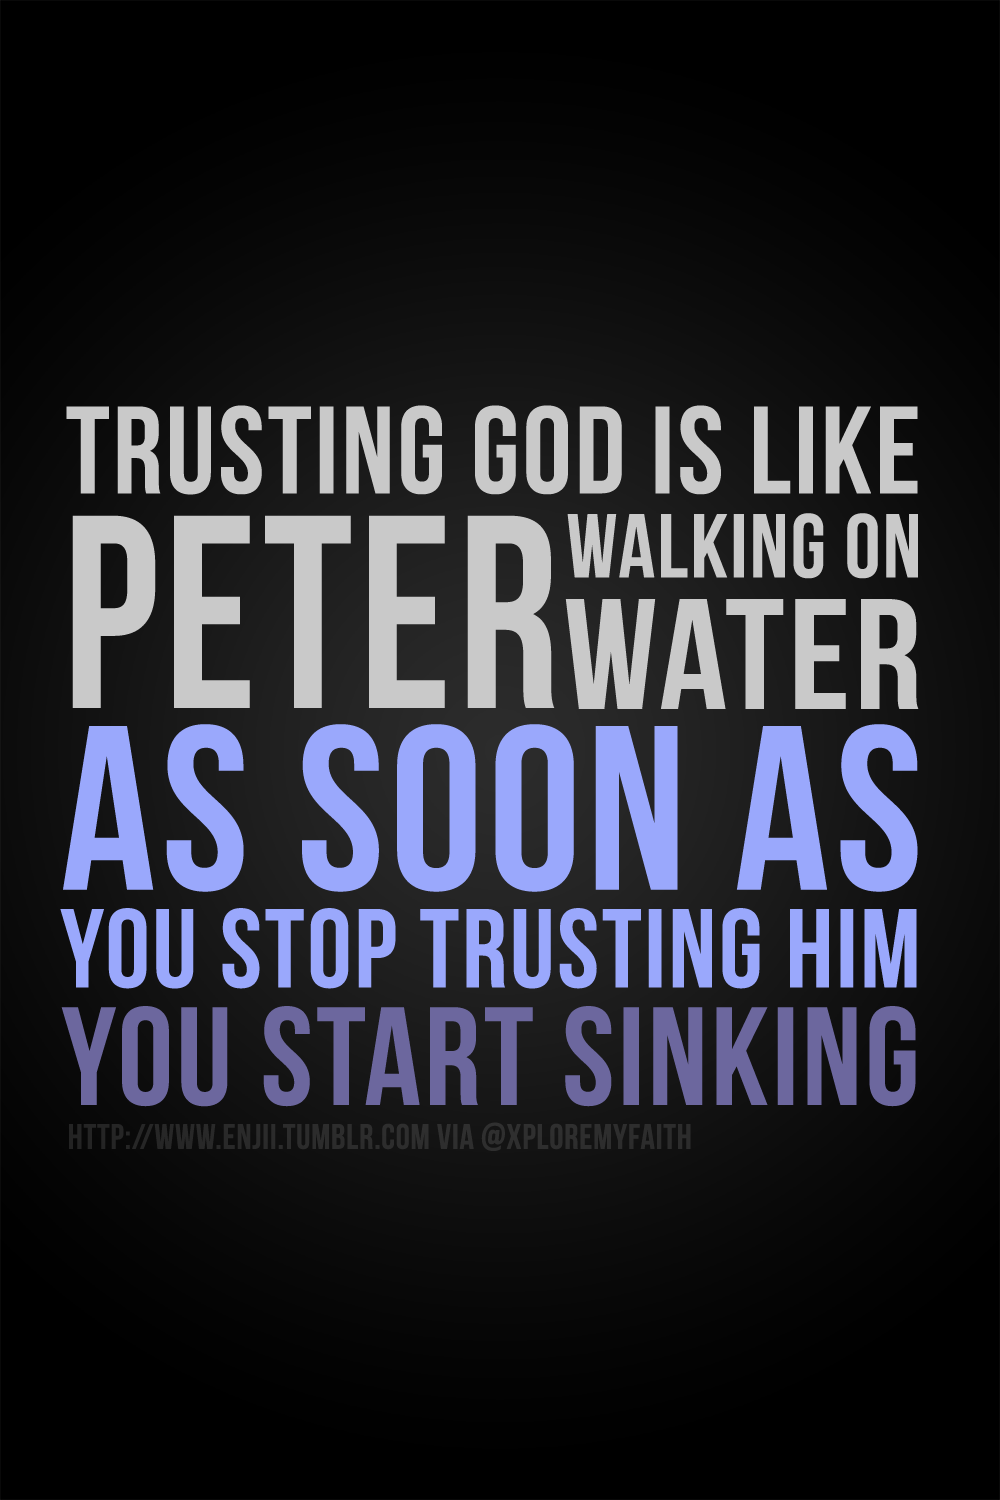 enjii:  Trusting God is like Peter walking on water..